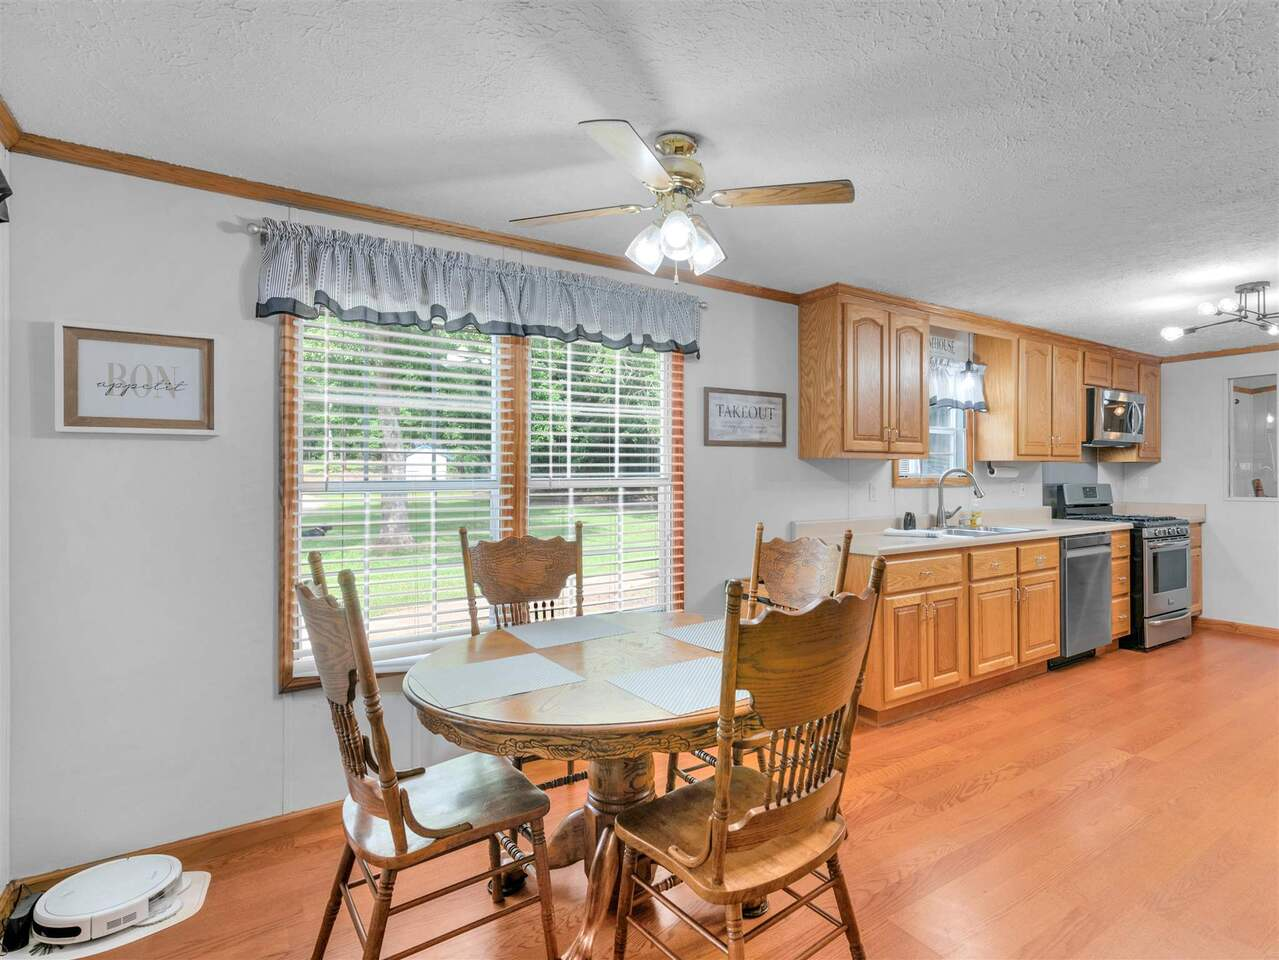 258 Country Kitchen Road Property Photo 7